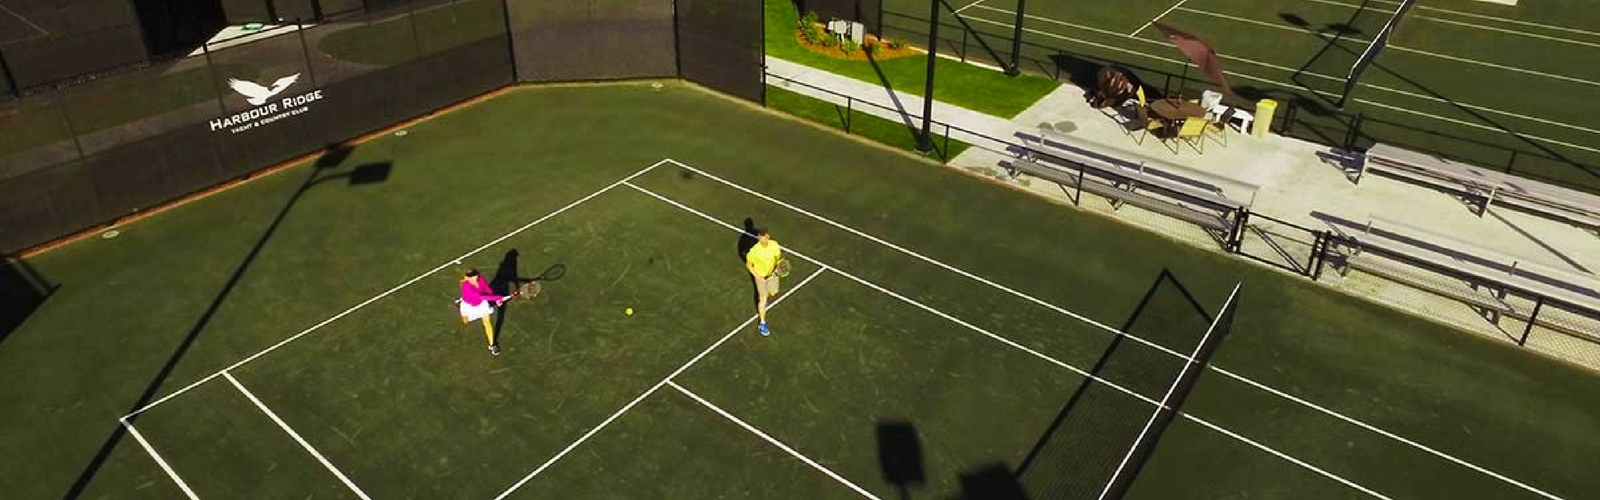 Learn How Roger Federer Uses His Backhand Better Than Most